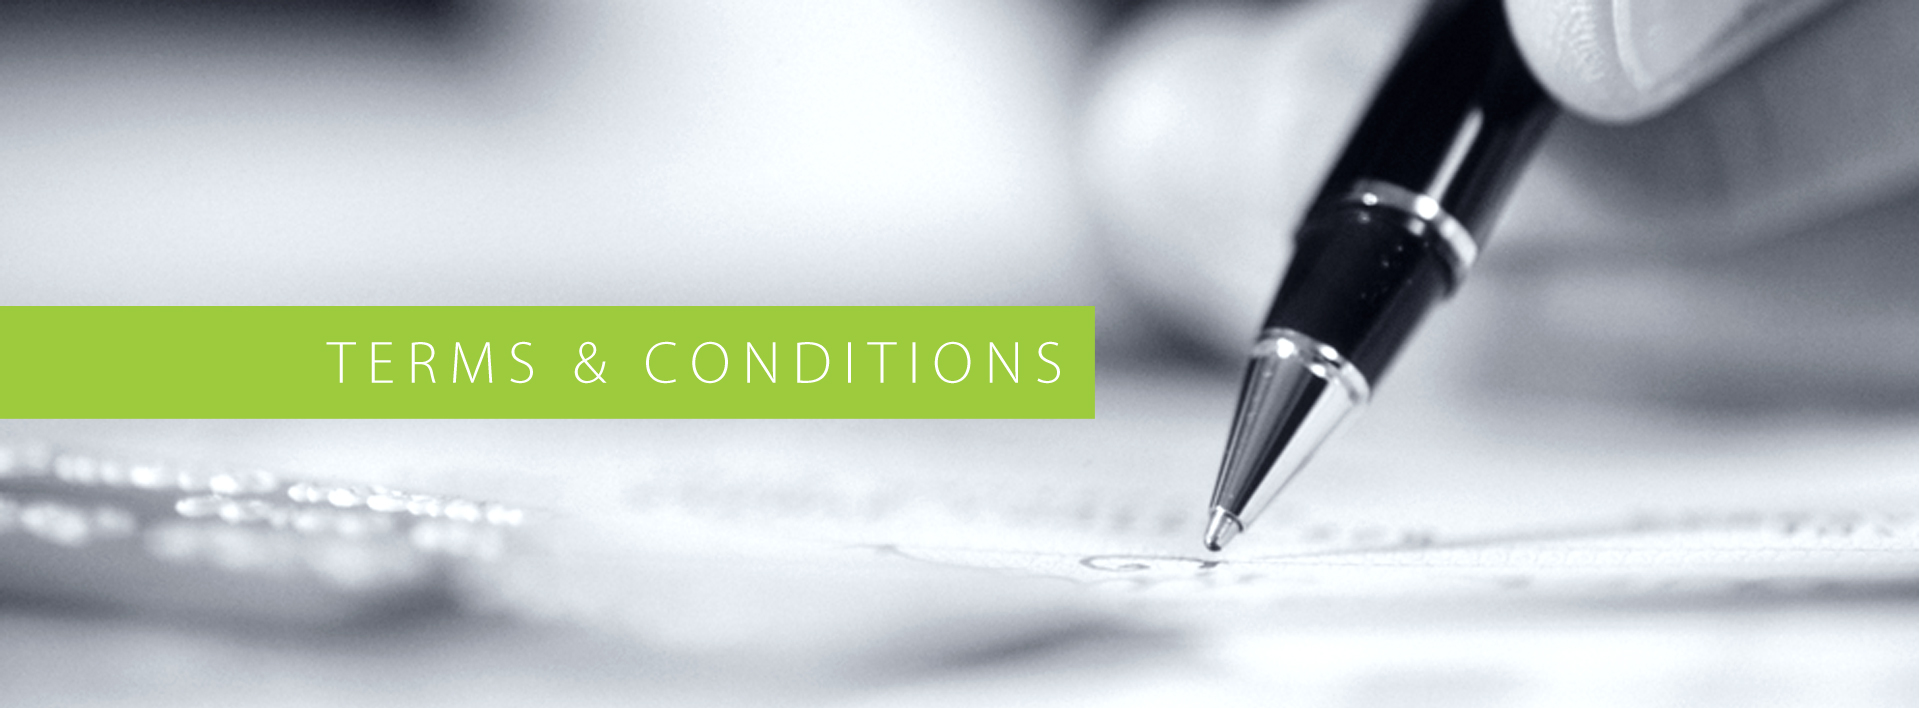 Terms_Conditions_green31